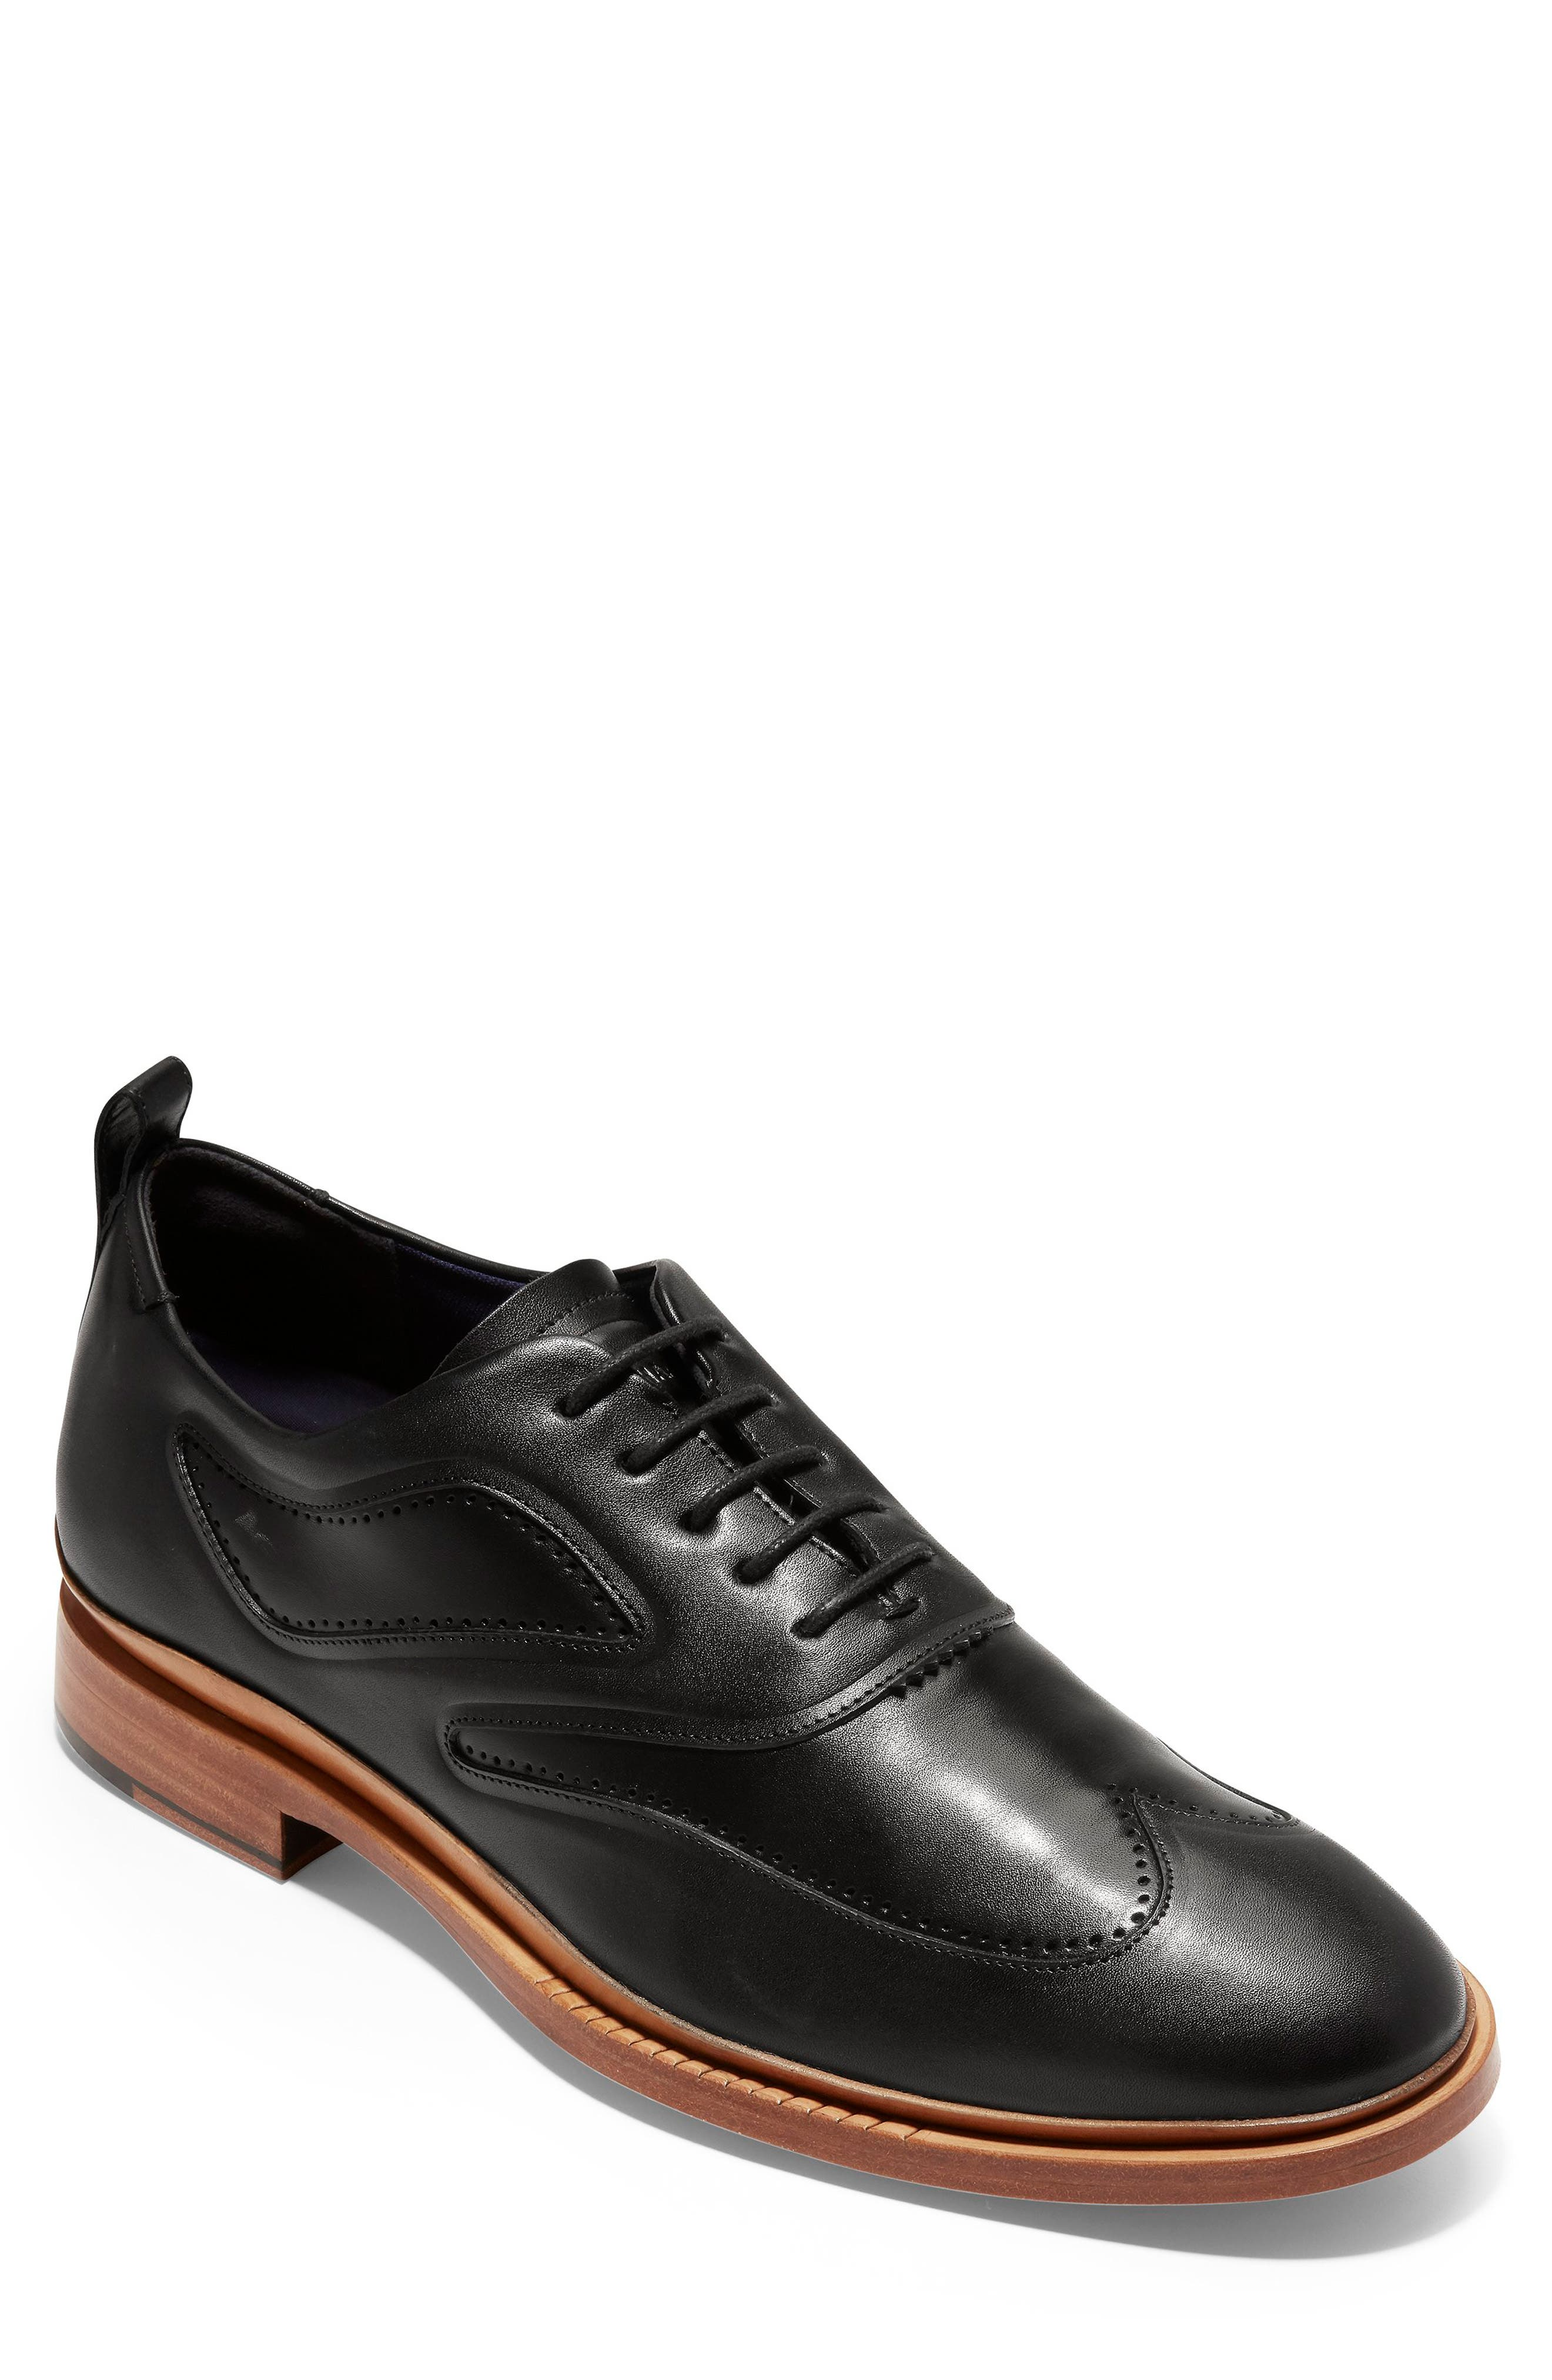 Washington Grand 2.0 Wingtip,                         Main,                         color, 001